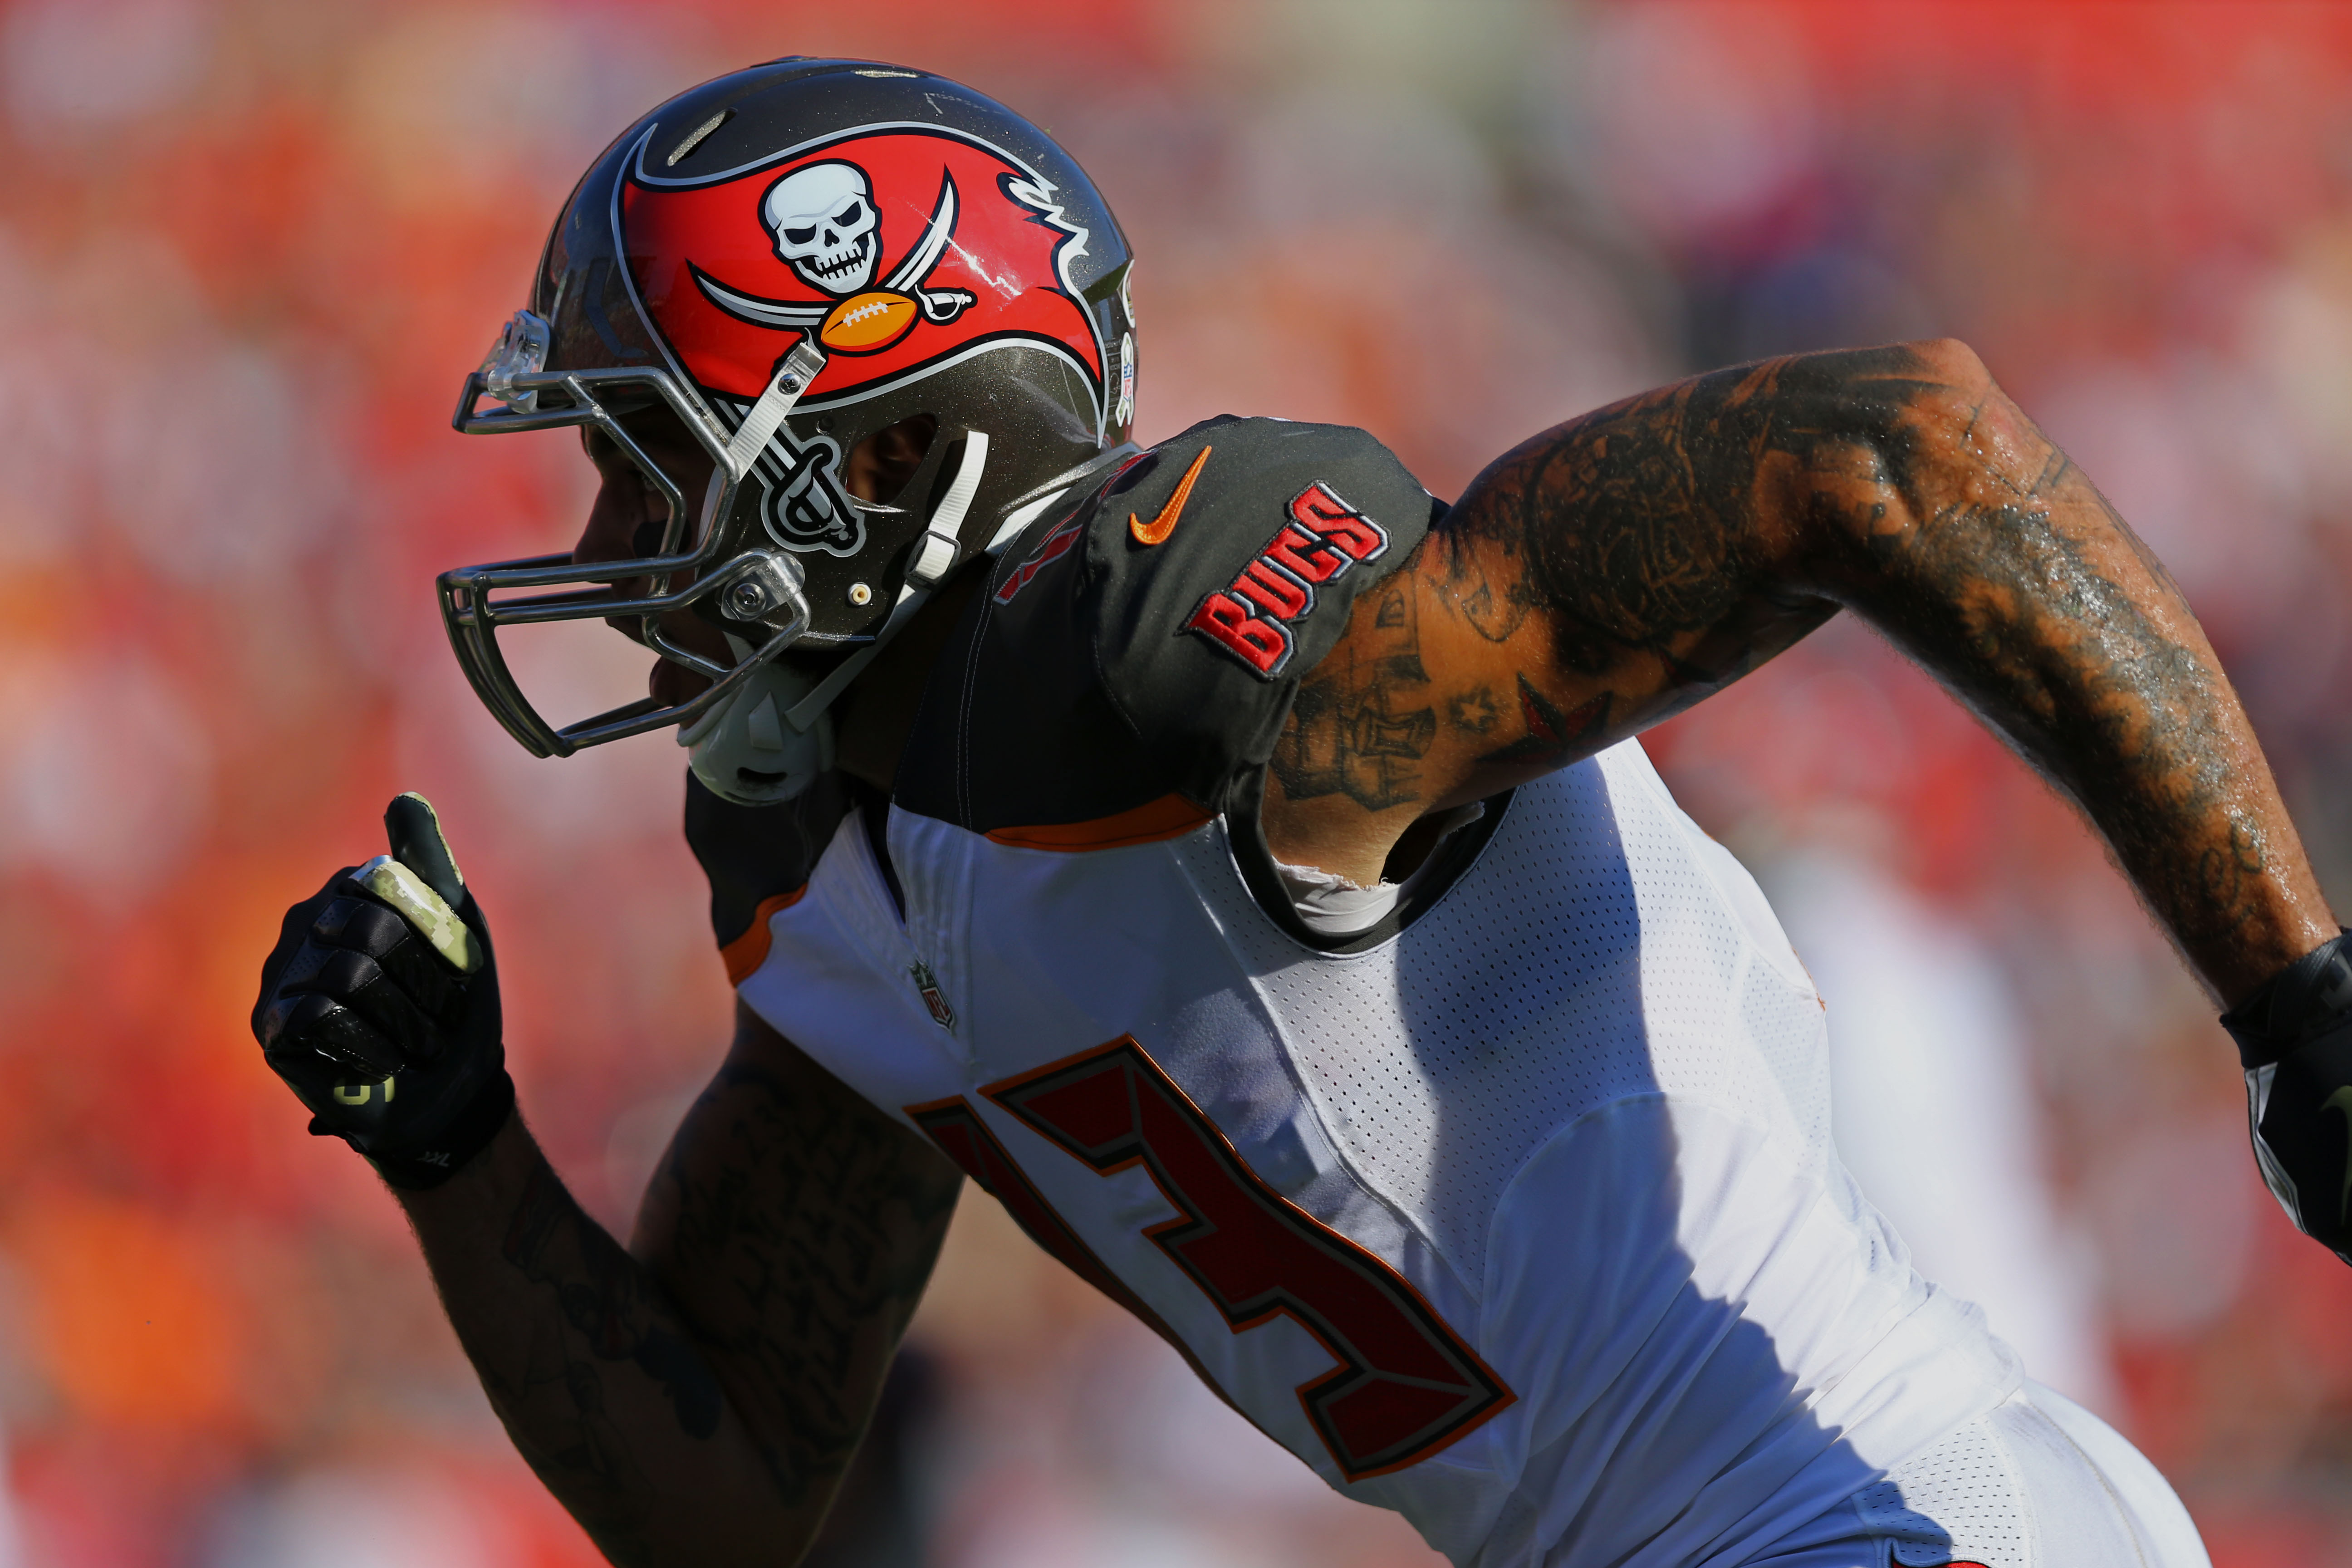 Nov 13, 2016; Tampa, FL, USA; Tampa Bay Buccaneers wide receiver Mike Evans (13) against the Chicago Bears at Raymond James Stadium. The Buccaneers won 36-10. Mandatory Credit: Aaron Doster-USA TODAY Sports